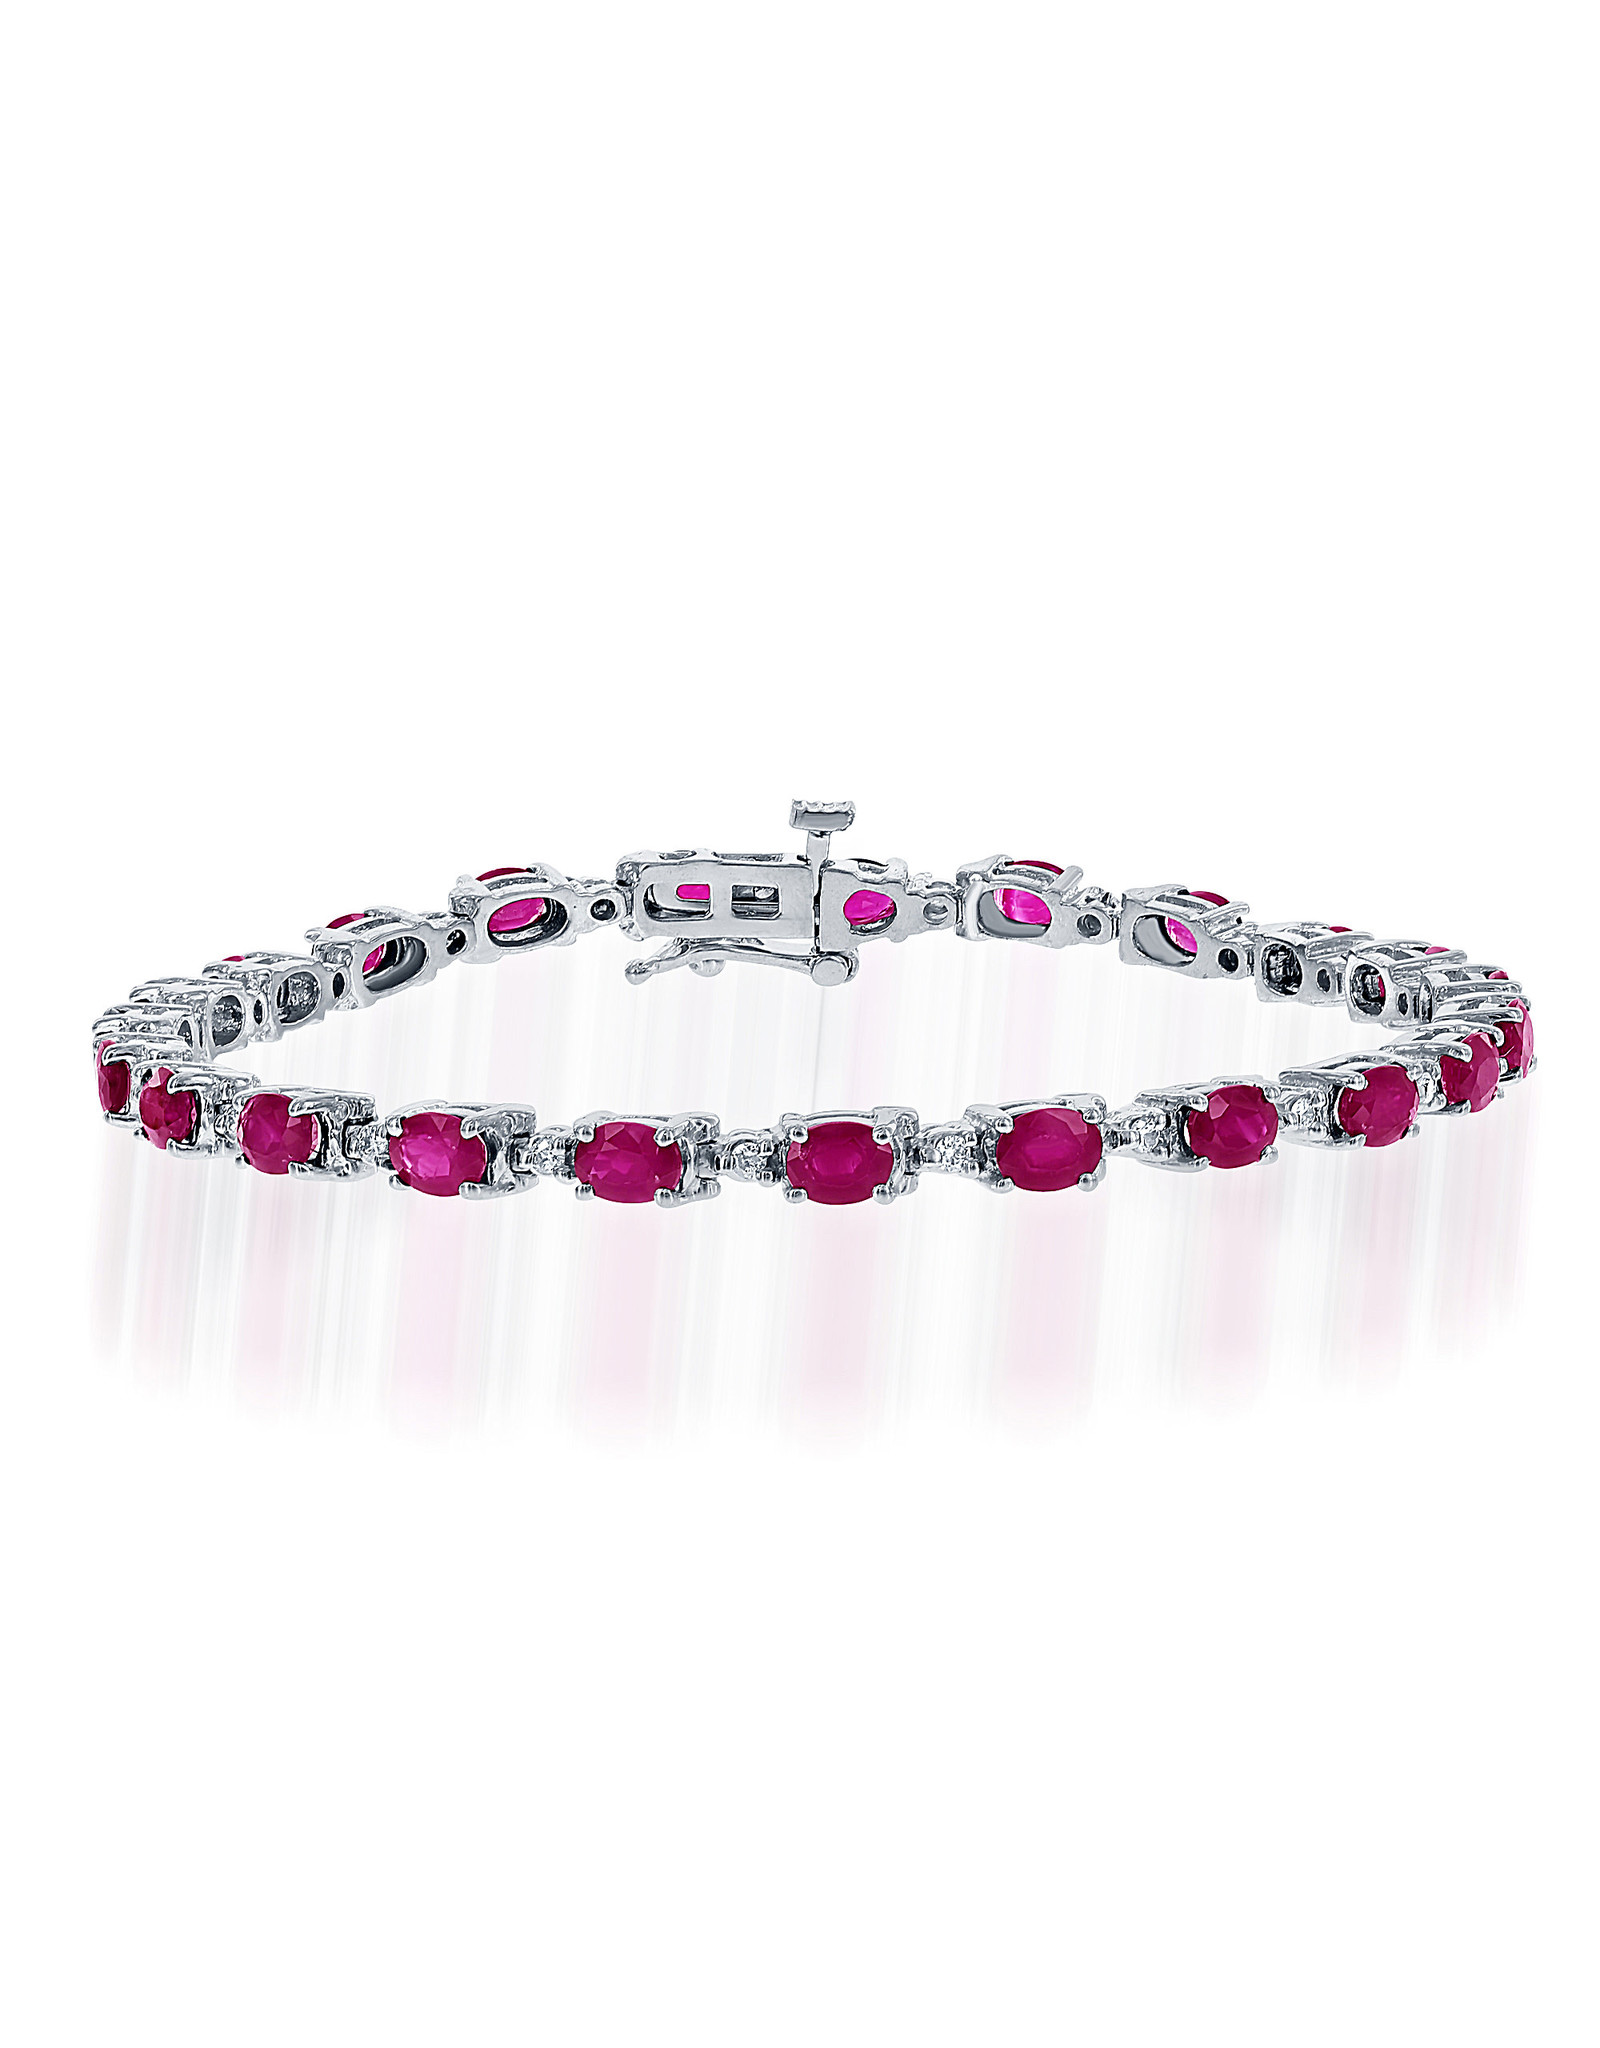 14K White Gold Ruby and Diamond Tennis Bracelet, R: 7.42ct, D: 0.53ct